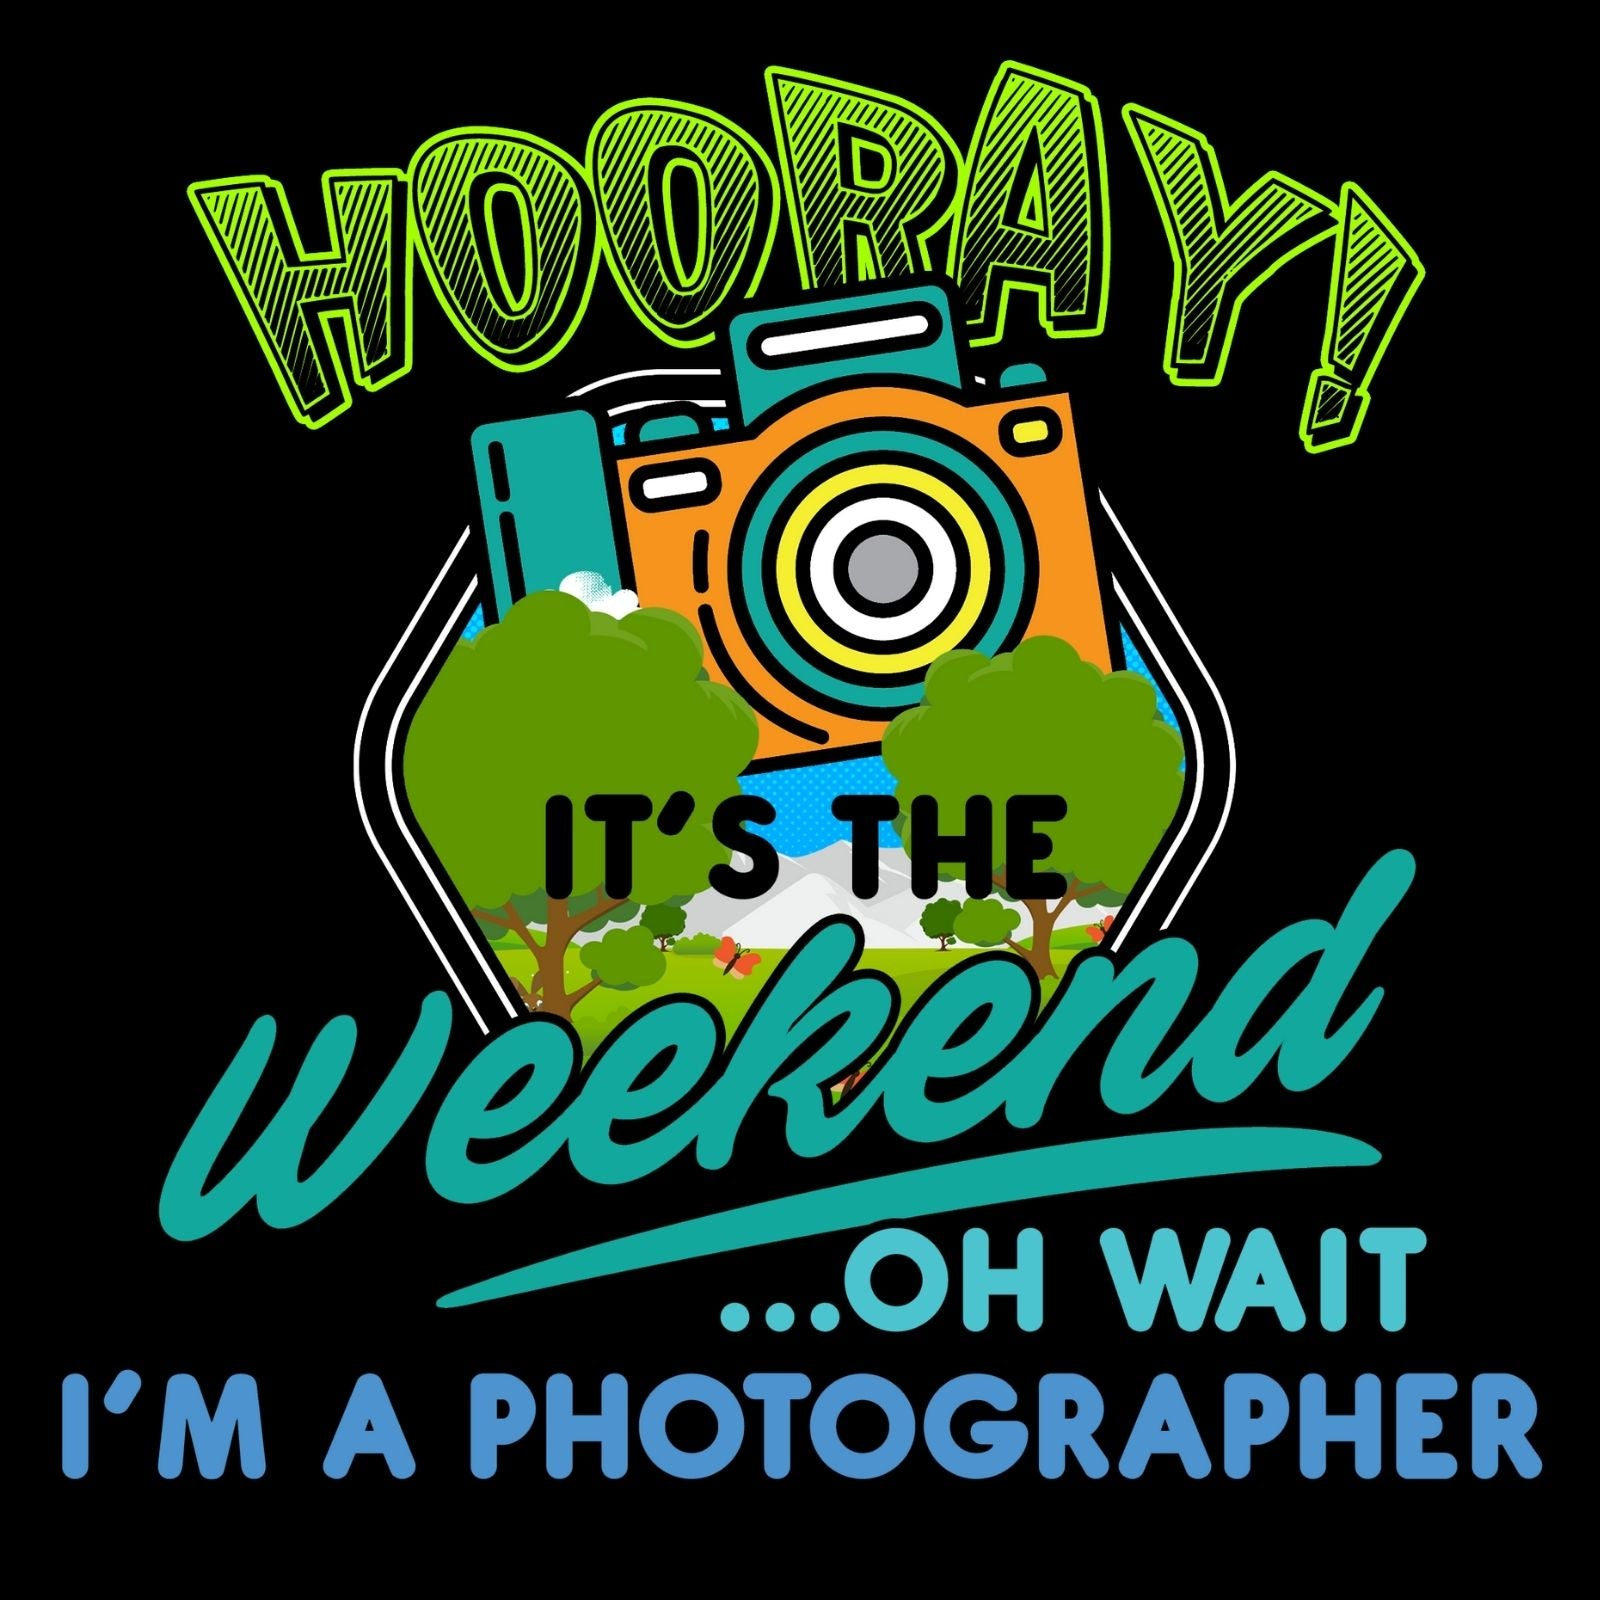 Hooray! It's The Weekend... Oh Wait I'm A Photographer! - Bastard Graphics